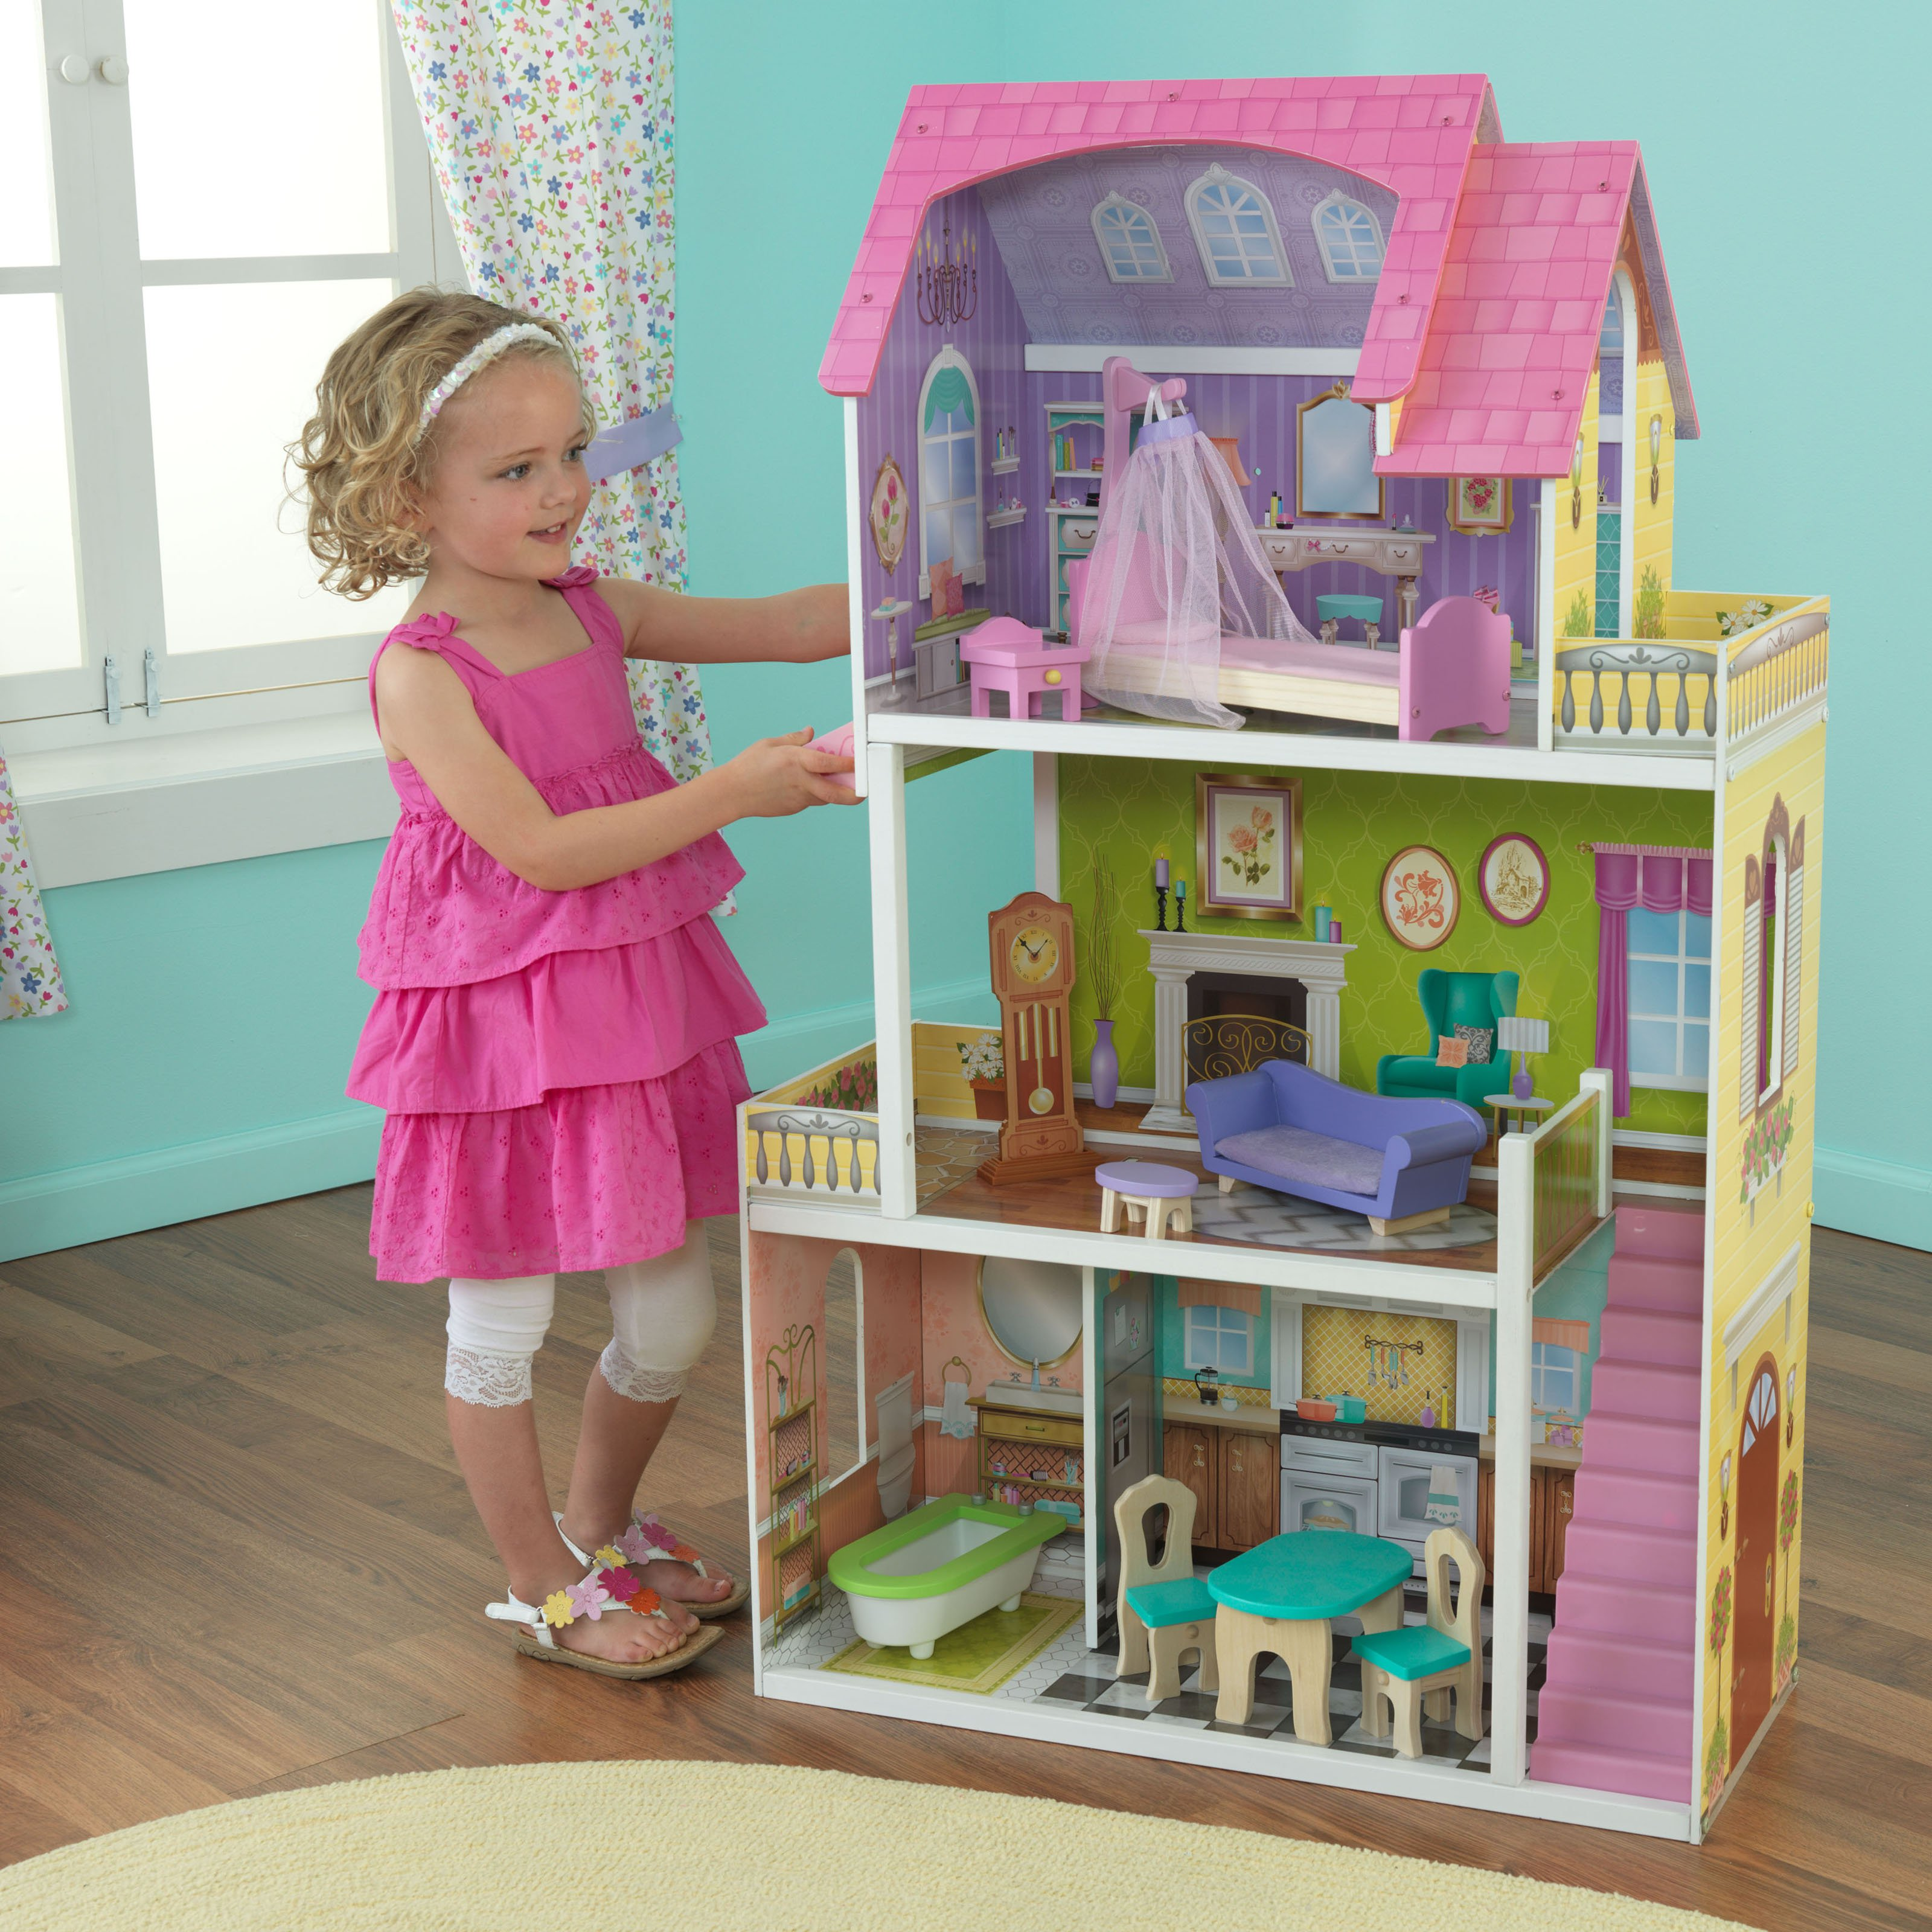 KidKraft Florence Dollhouse 65850 by KidKraft LP